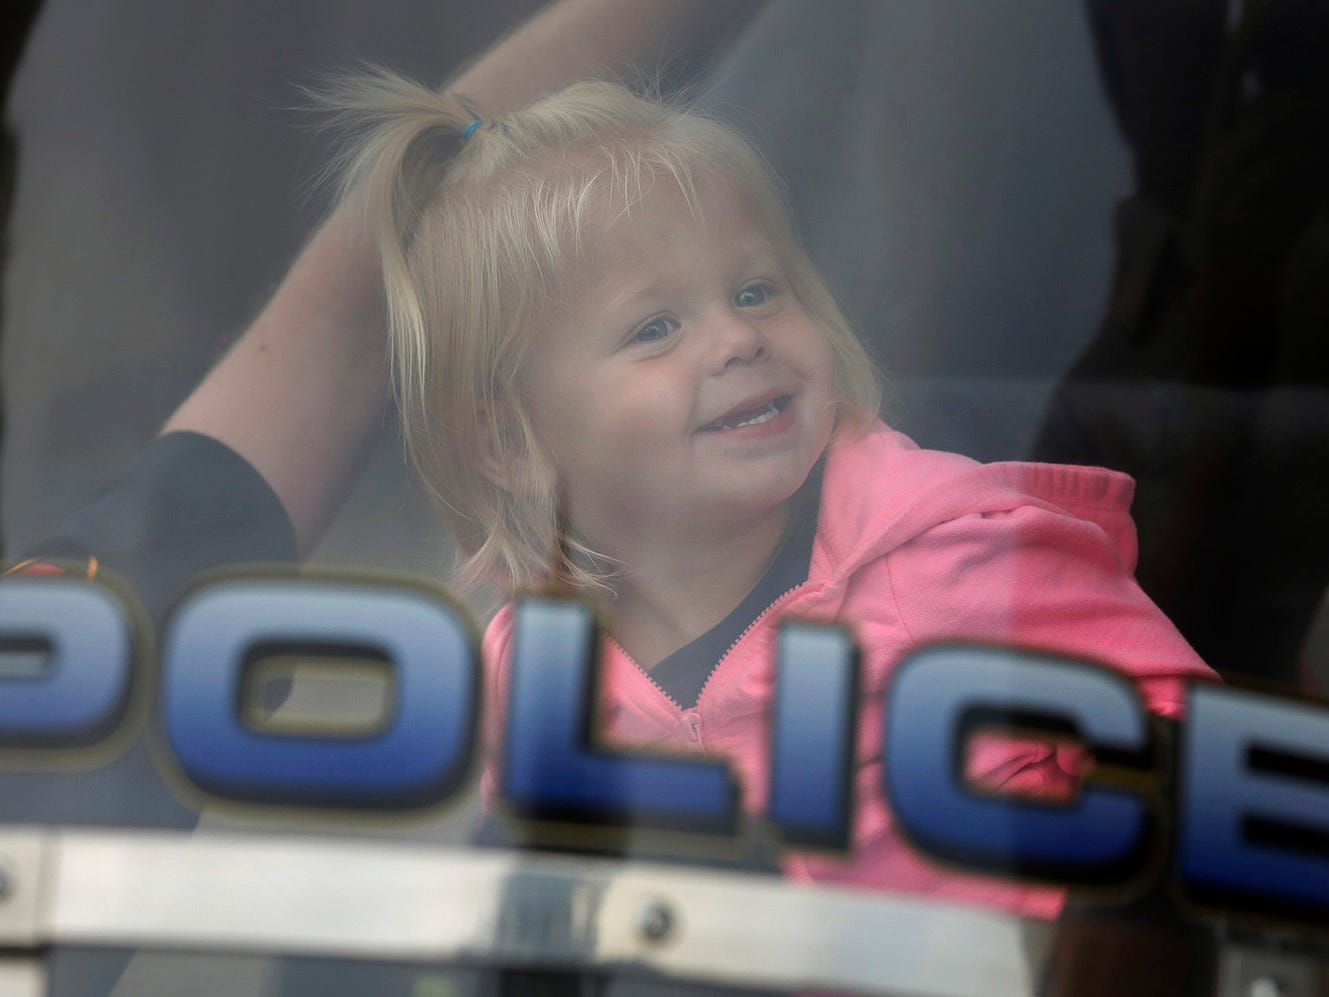 Emma Bastil,2, of Sheboygan, smiles while sitting on a police motorcycle during National Night Out at End Park, Tuesday, August 7, 2018, in Sheboygan, Wis. National Night Out is a community-police awareness-raising event.